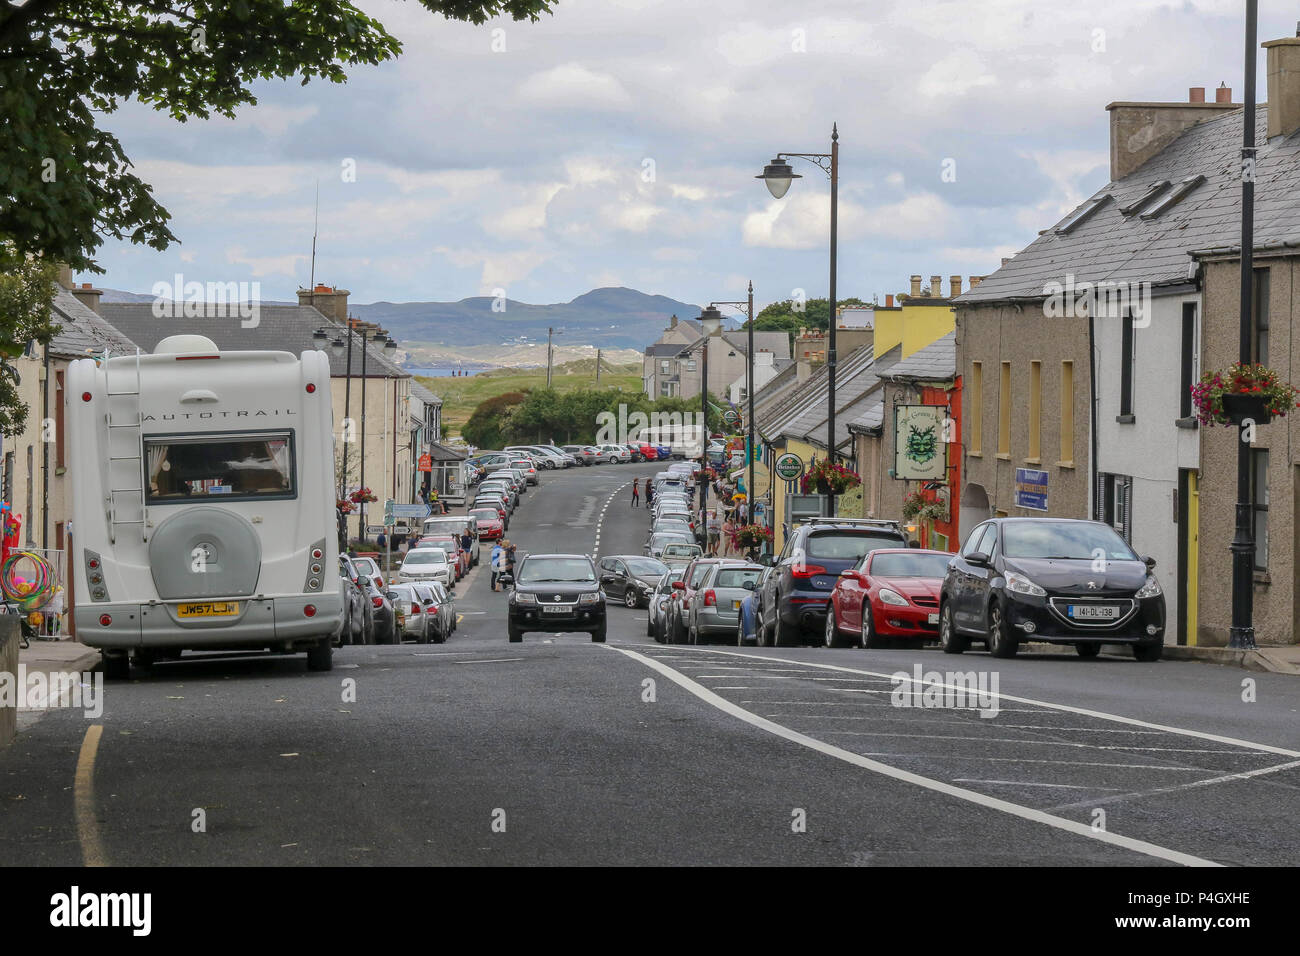 Cars and shops in the main street in Dunfanaghy - a popular village for tourists in County Donegal, Ireland. - Stock Image